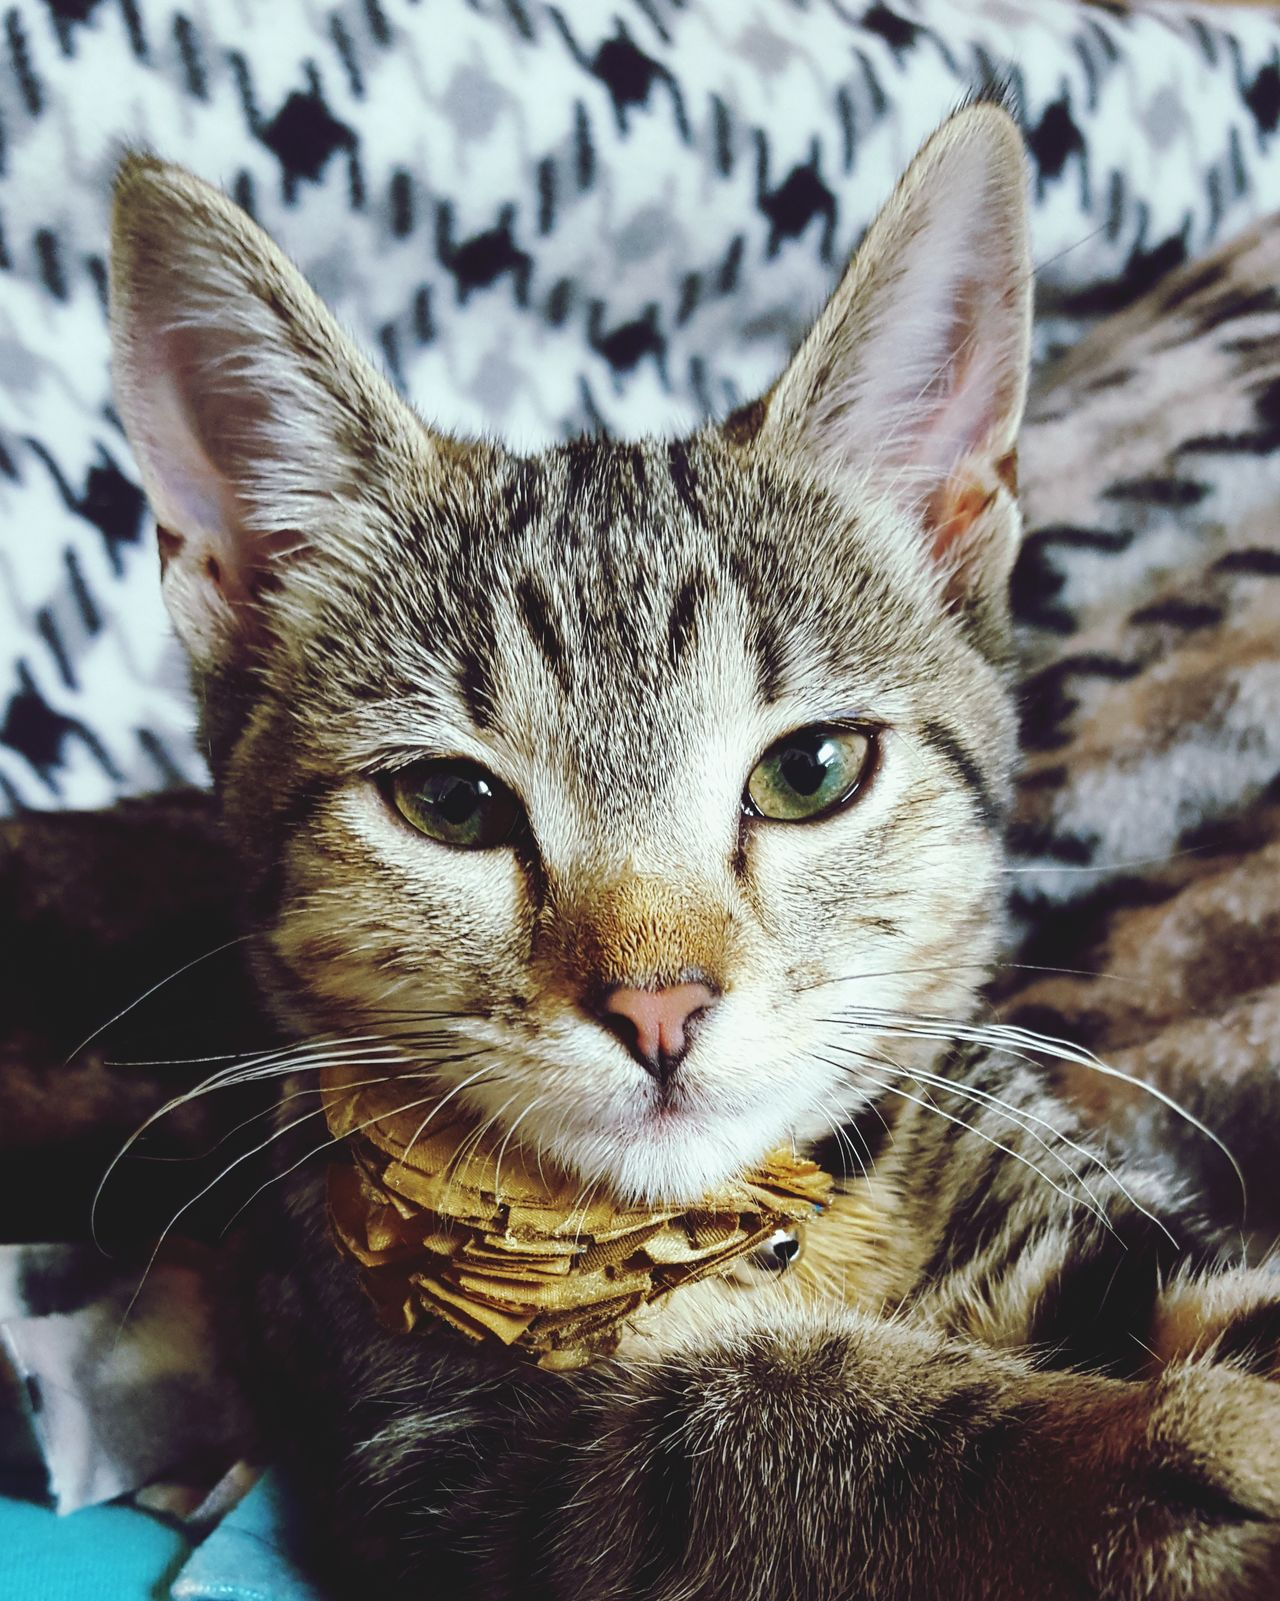 Cat Feline Kitten Domestic Cat Looking At Camera Domestic Animals One Animal Leisure Animal Themes Whisker Close-up Indoors  Meow Pets Portrait Catlady Lounging Lifestyles No People Indoors  Mammal Relaxation The Portraitist - 2017 EyeEm Awards